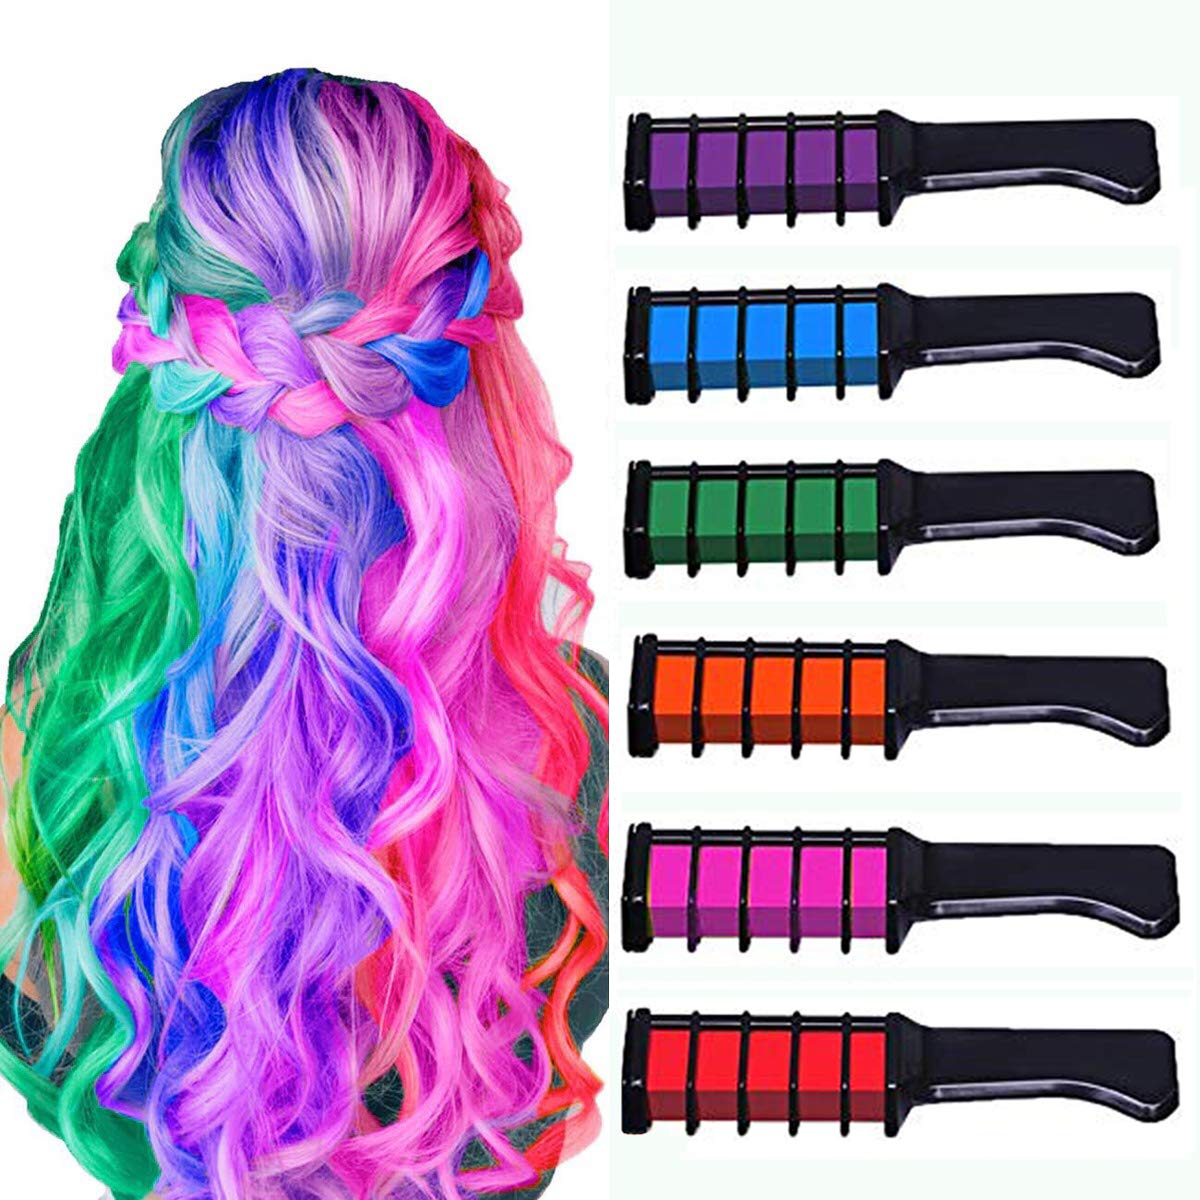 Temporary Hair Chalk Comb-Non Toxic Washable Hair Color Comb for Hair Dye-Safe for Kids for Party Cosplay DIY (6 Colors)